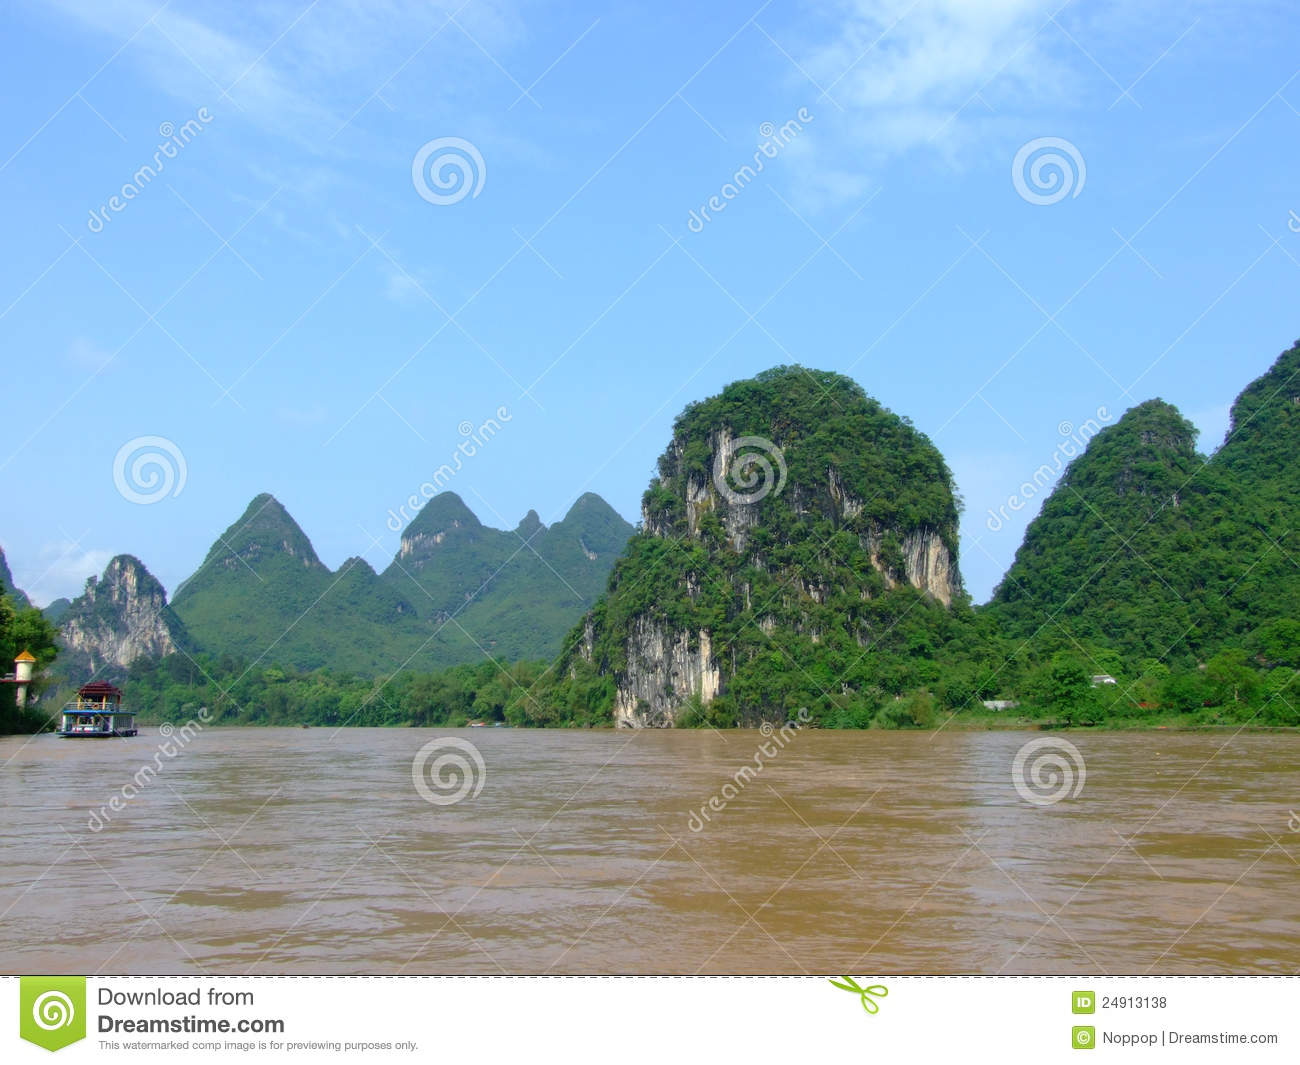 View of Mountain and Lijiang River